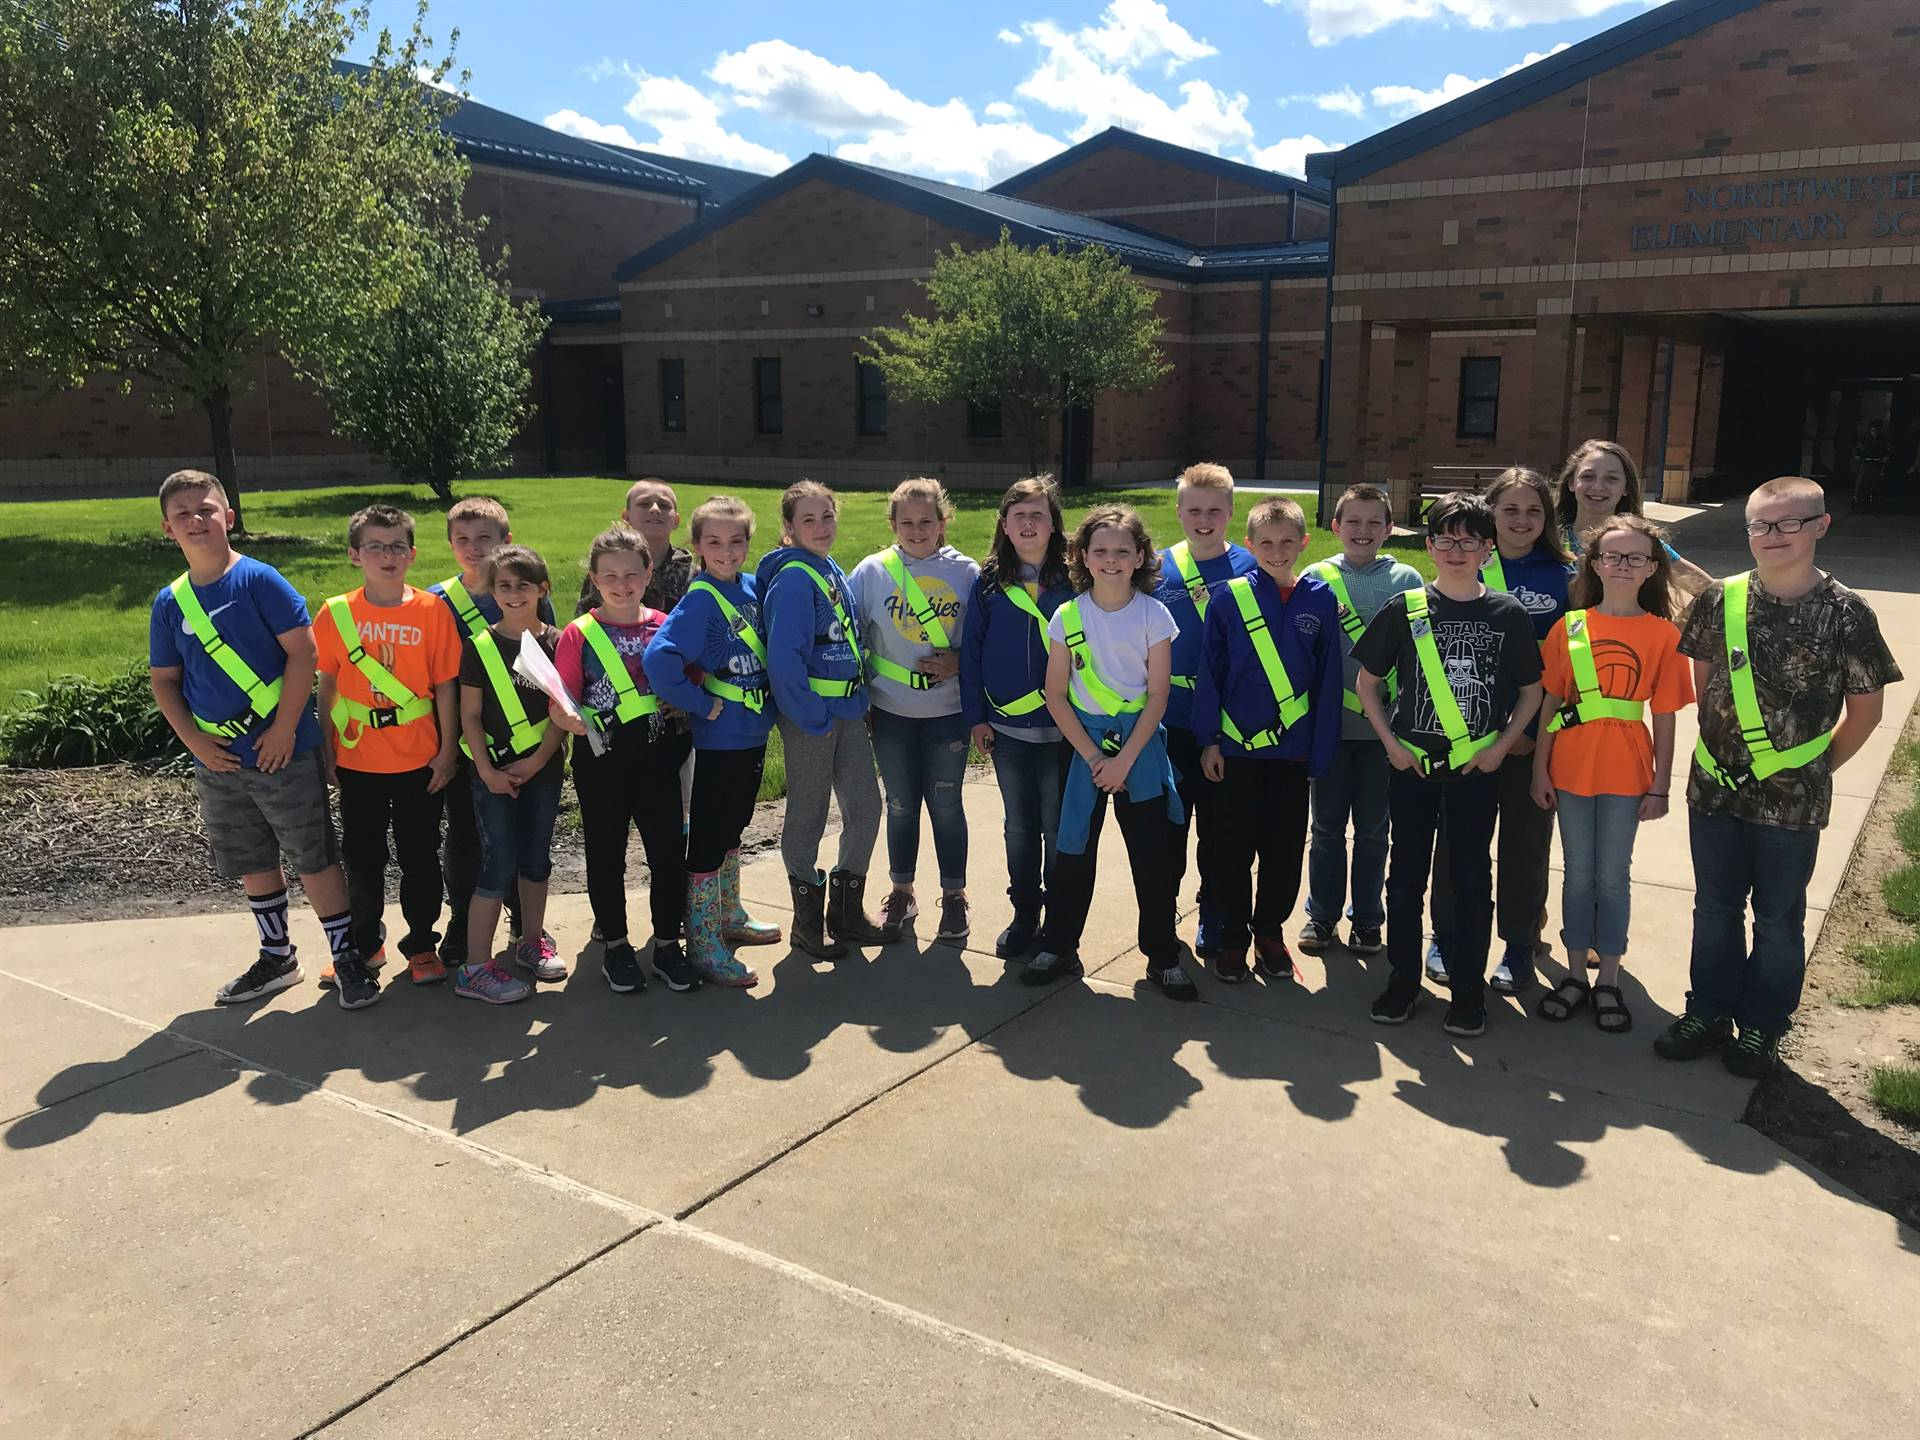 Our awesome Safety Patrol!